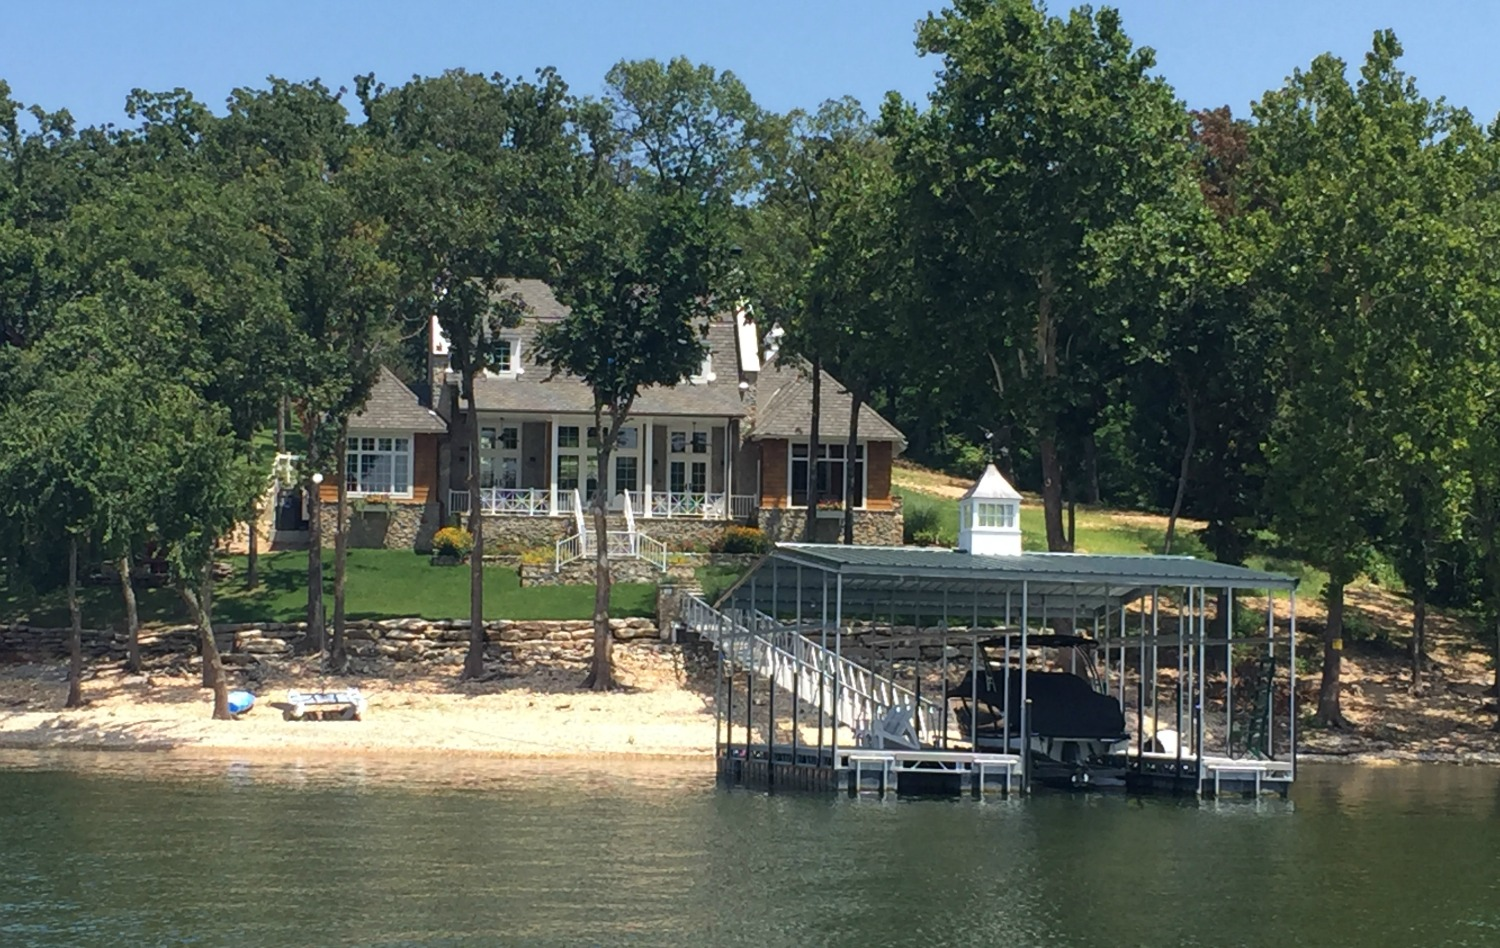 southern deluxe cabins resort grand lake ok oaks family rentals rooms oklahoma cabin spa